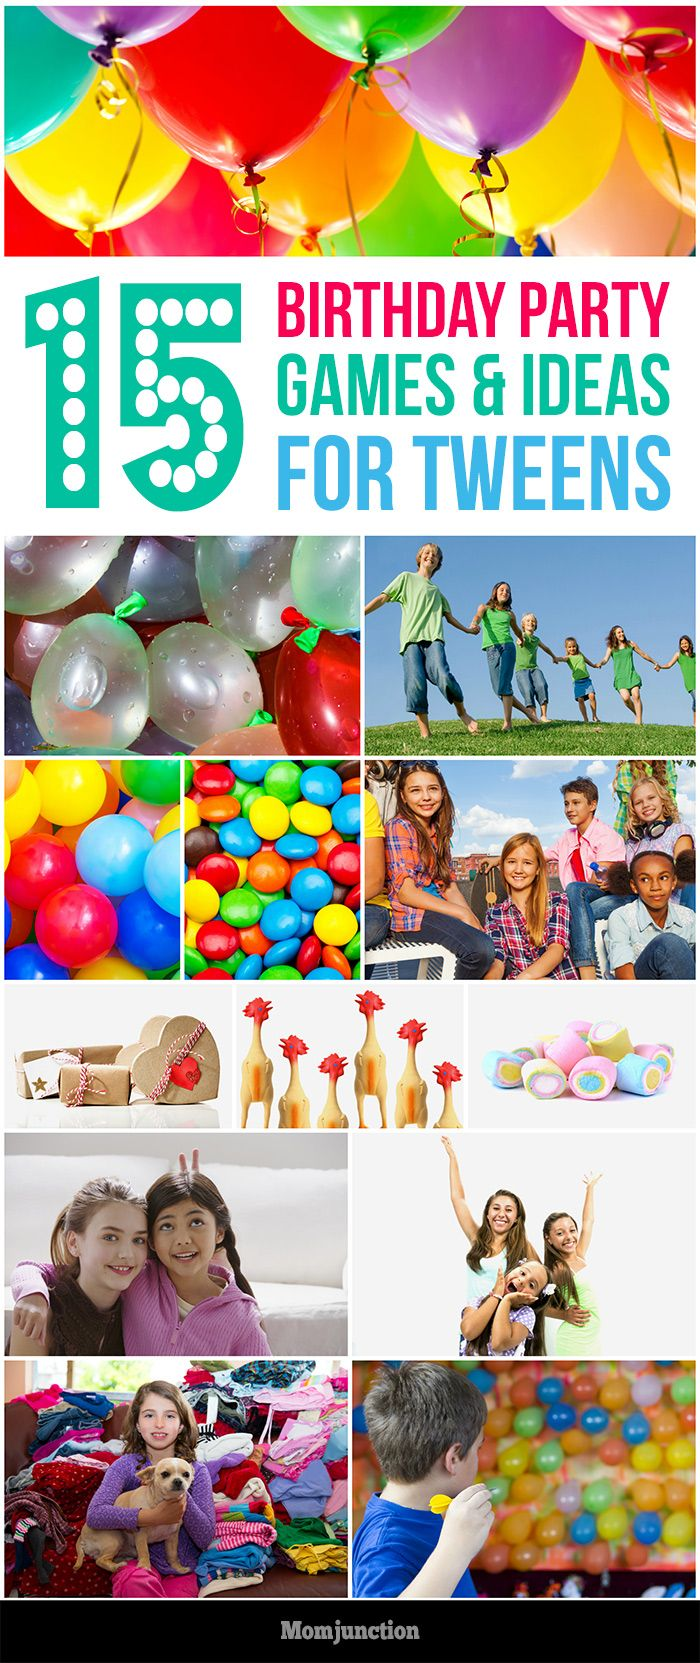 Top 15 Birthday Party Games & Ideas For Tweens: We've compiled a list of 15 games and activities that will be a sure shot hit with your tween and their friends!